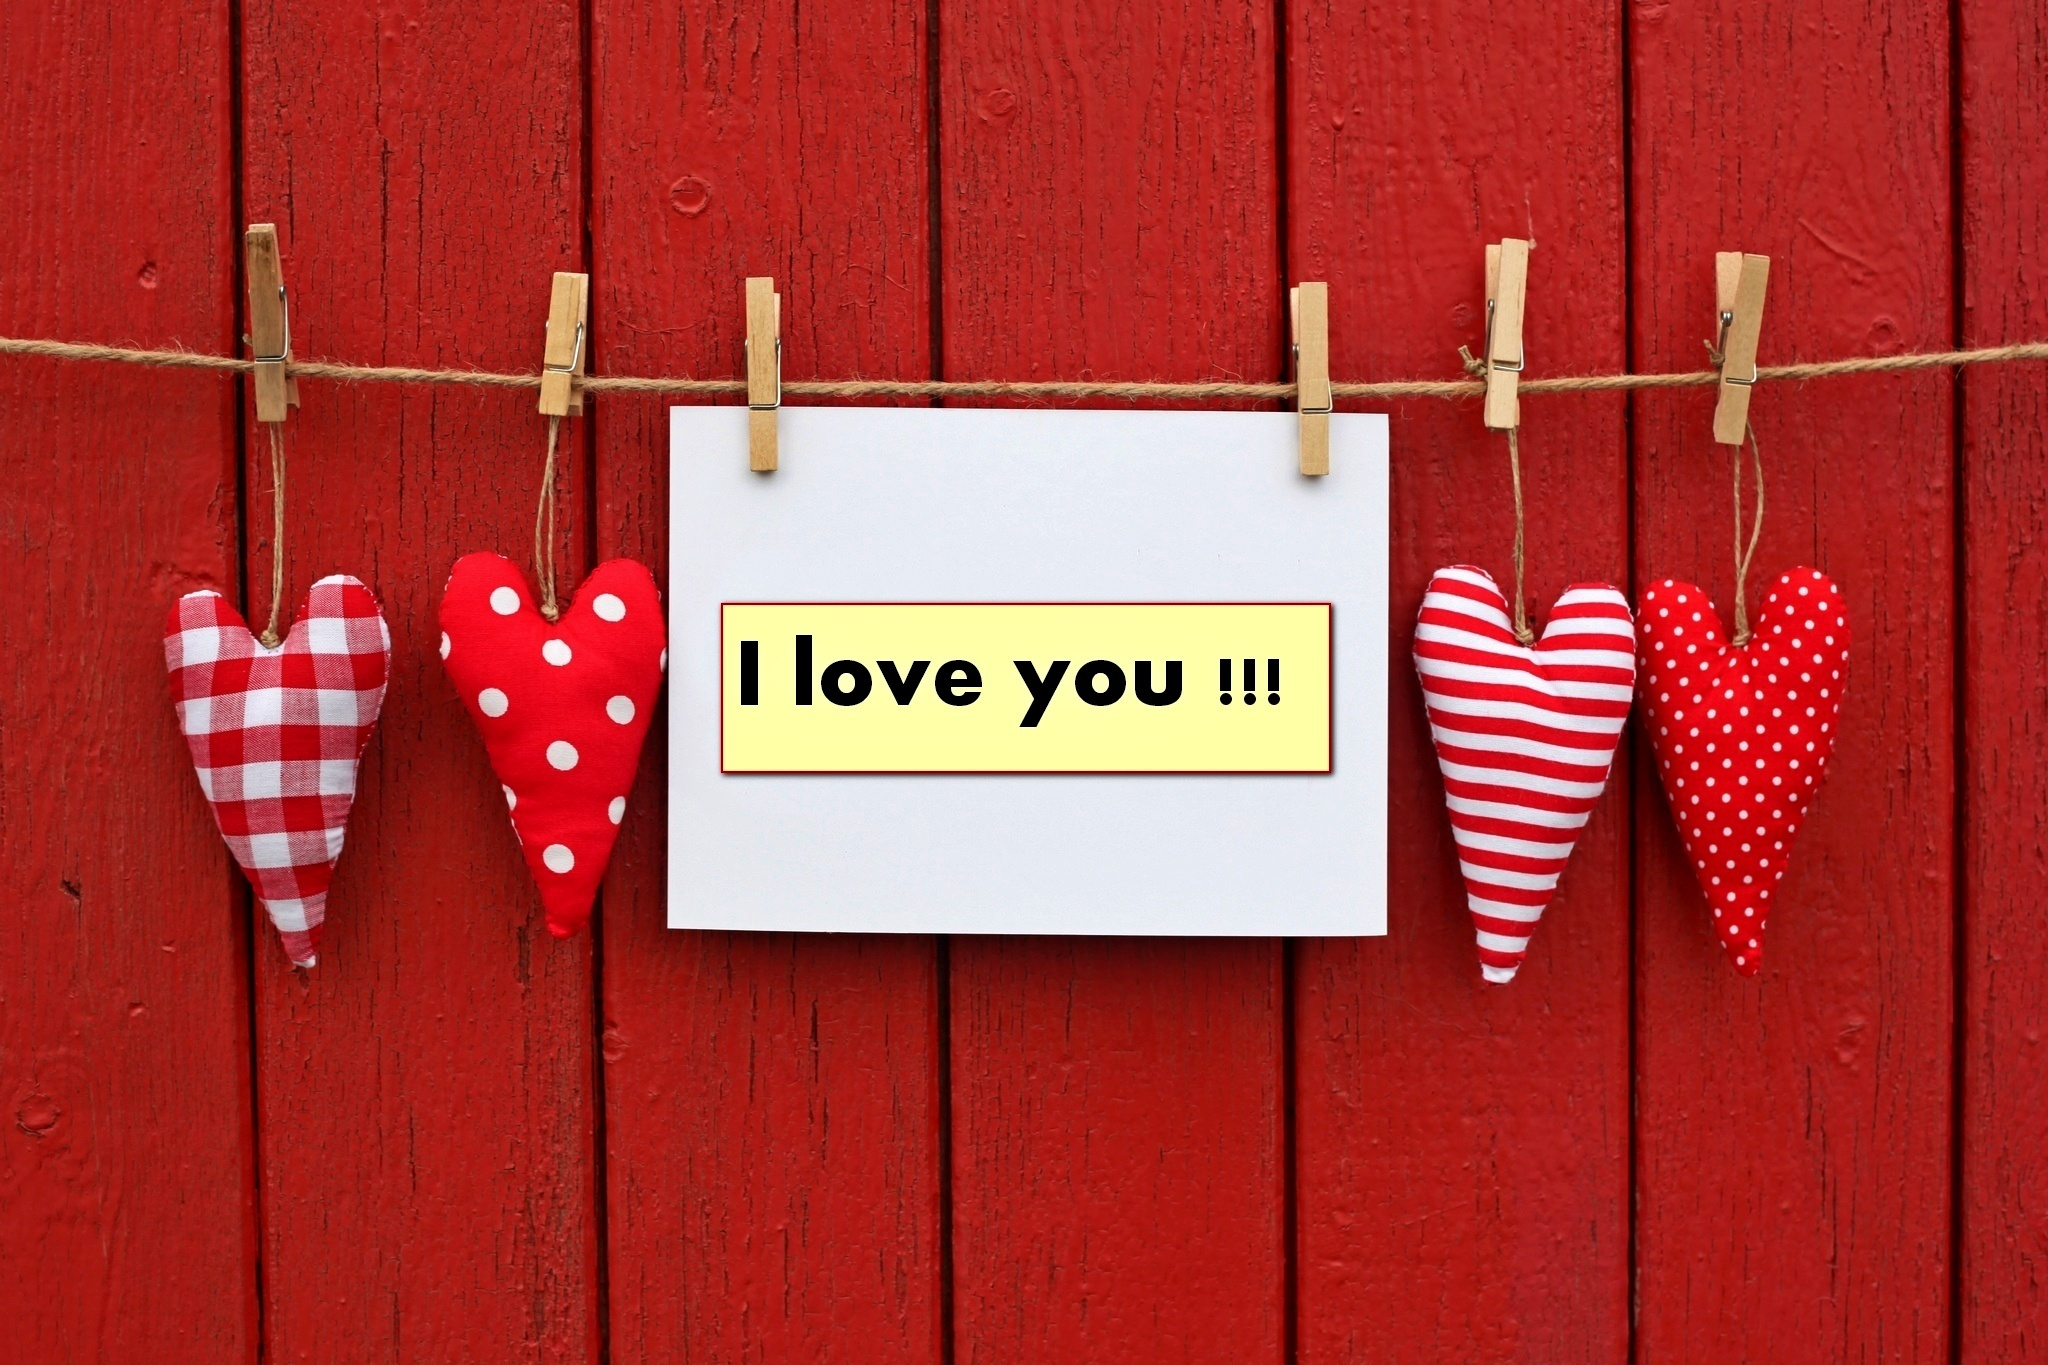 Desktop Wallpaper I Love You : I Love You Wallpapers HD A9 - HD Desktop Wallpapers 4k HD